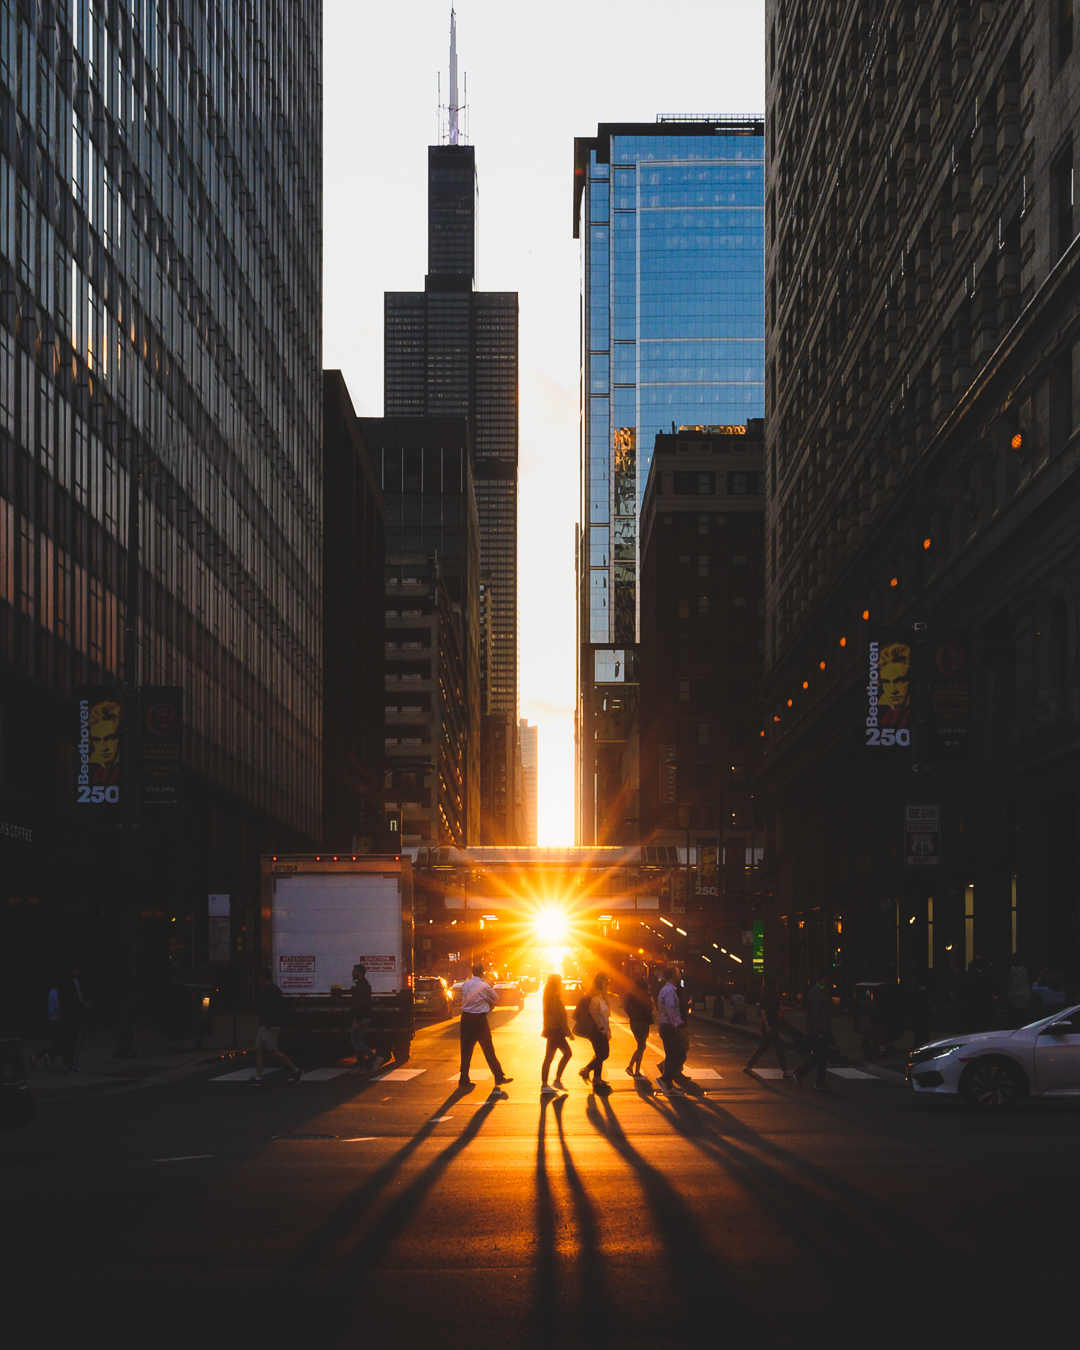 Pedestrians walking (during Chicagohenge) across a crosswalk while the Sun sets in the distance with the Willis Tower in view.